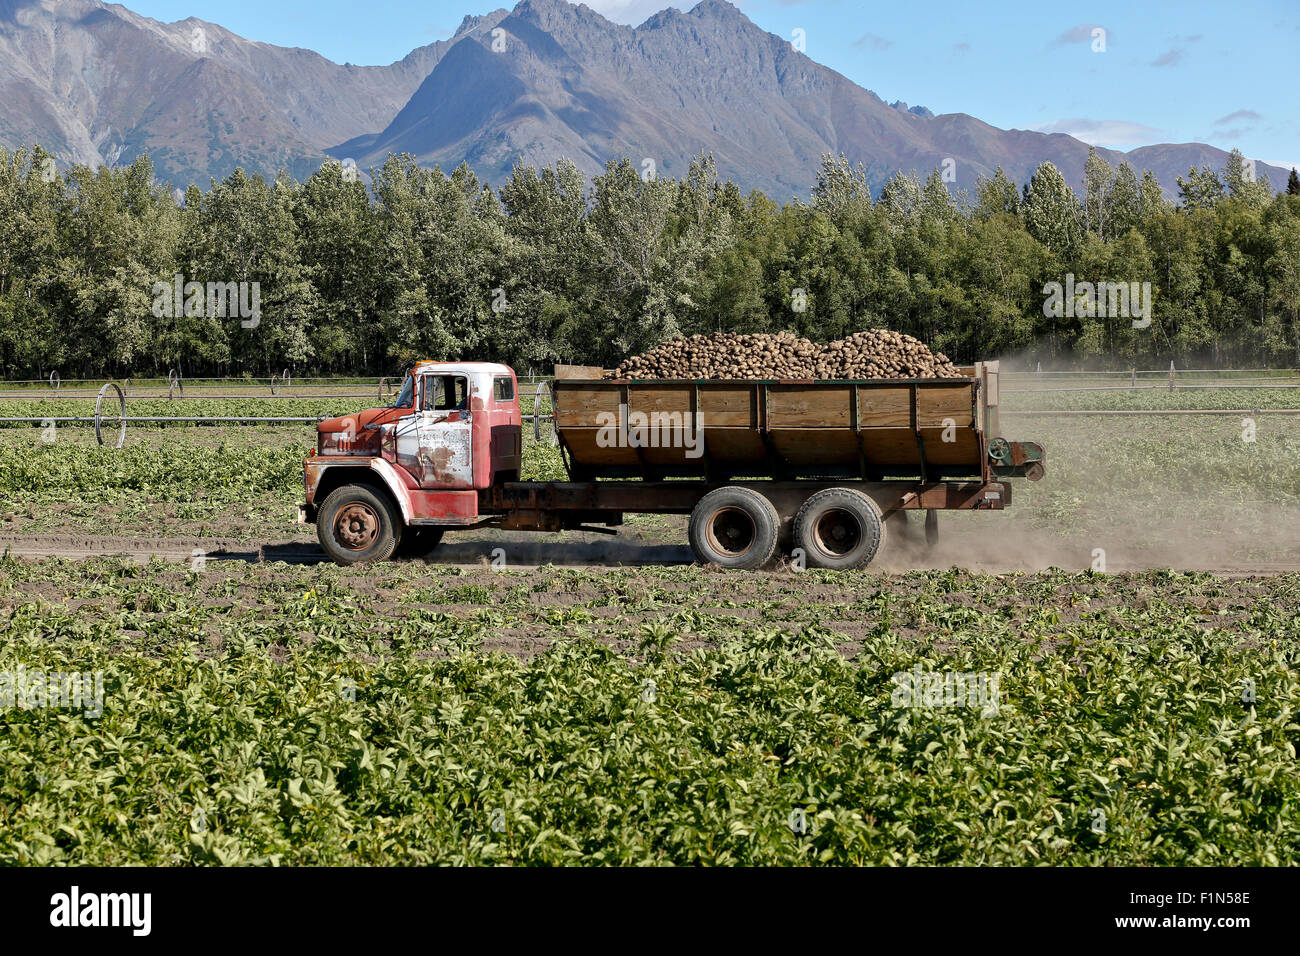 Dodge truck hauling  harvested 'Shepody' potatoes to processing plant. - Stock Image